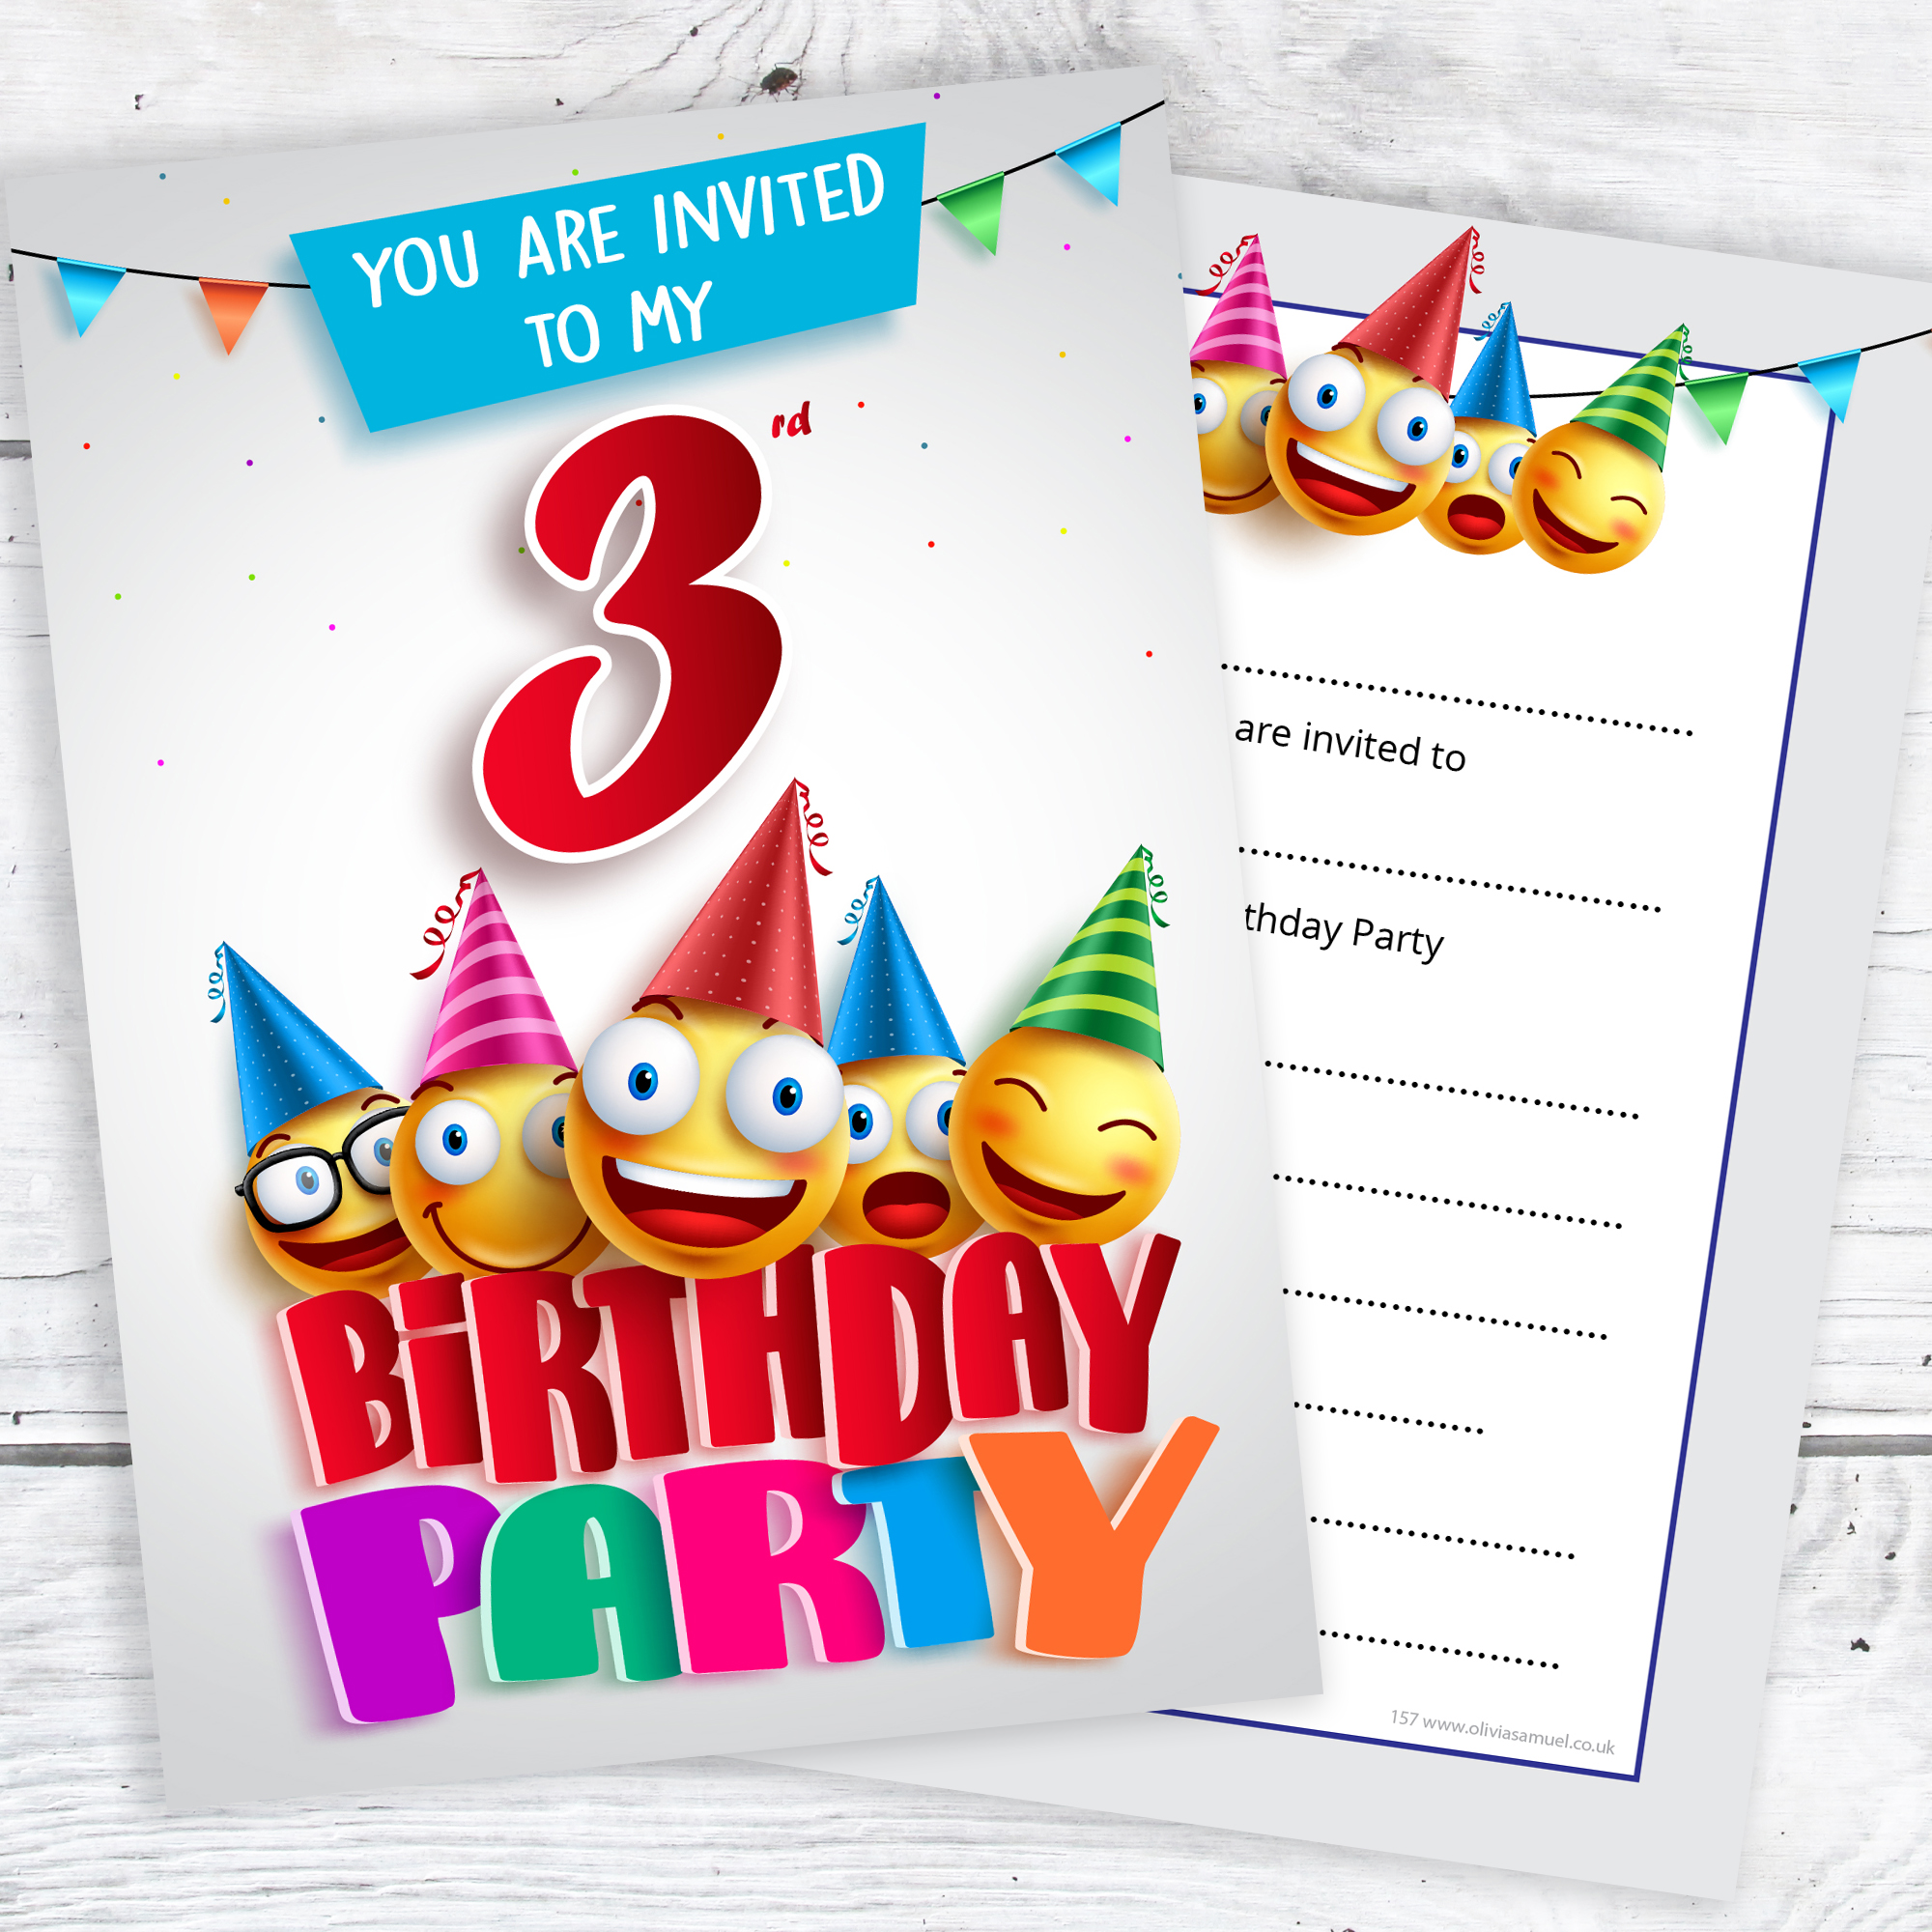 3rd birthday party invitations - Vatoz.atozdevelopment.co